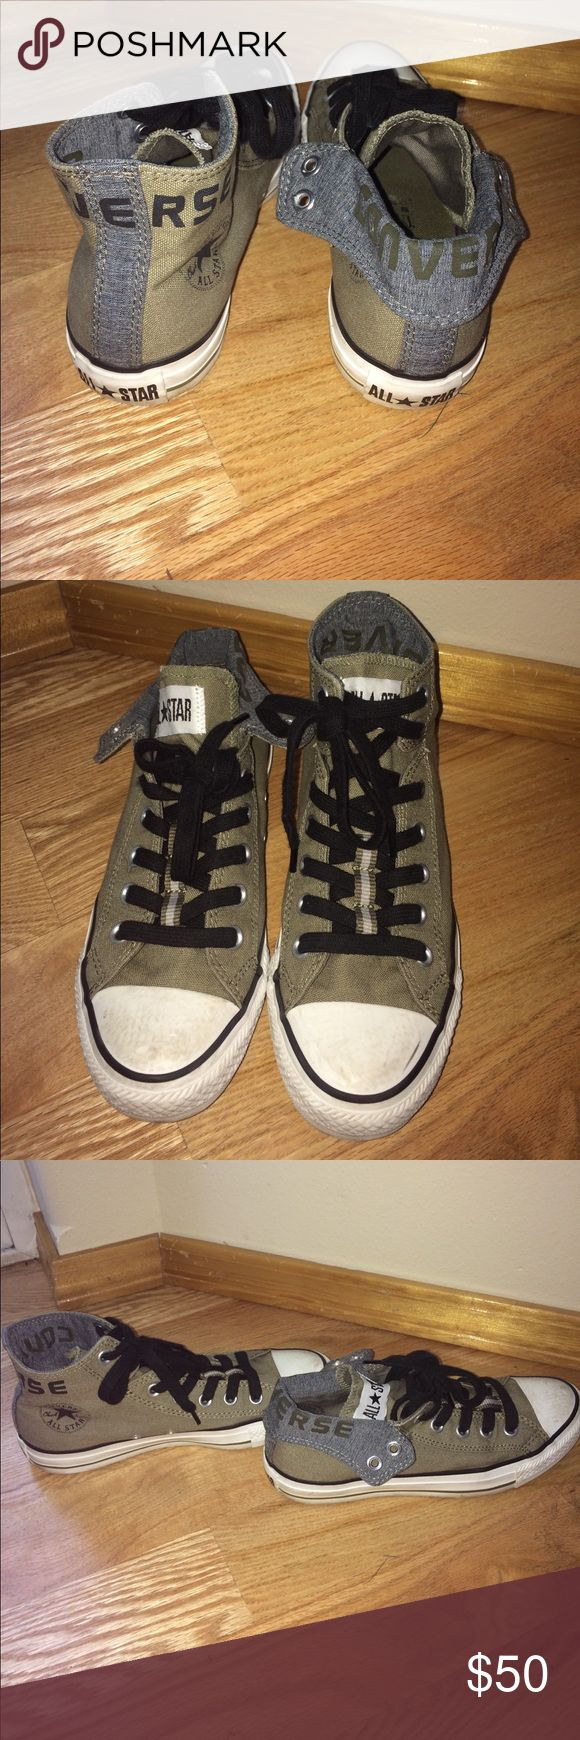 High-Low Converse Olive green Converse. In great condition! You can switch these into high-tops and low-tops. Please feel free to make an offer, ask for styling tips, and any questions. Happy to help. I wear a 5 in men's, 7.5-8 in women's and these fit perfectly. Thank you!!! -K Converse Shoes Sneakers